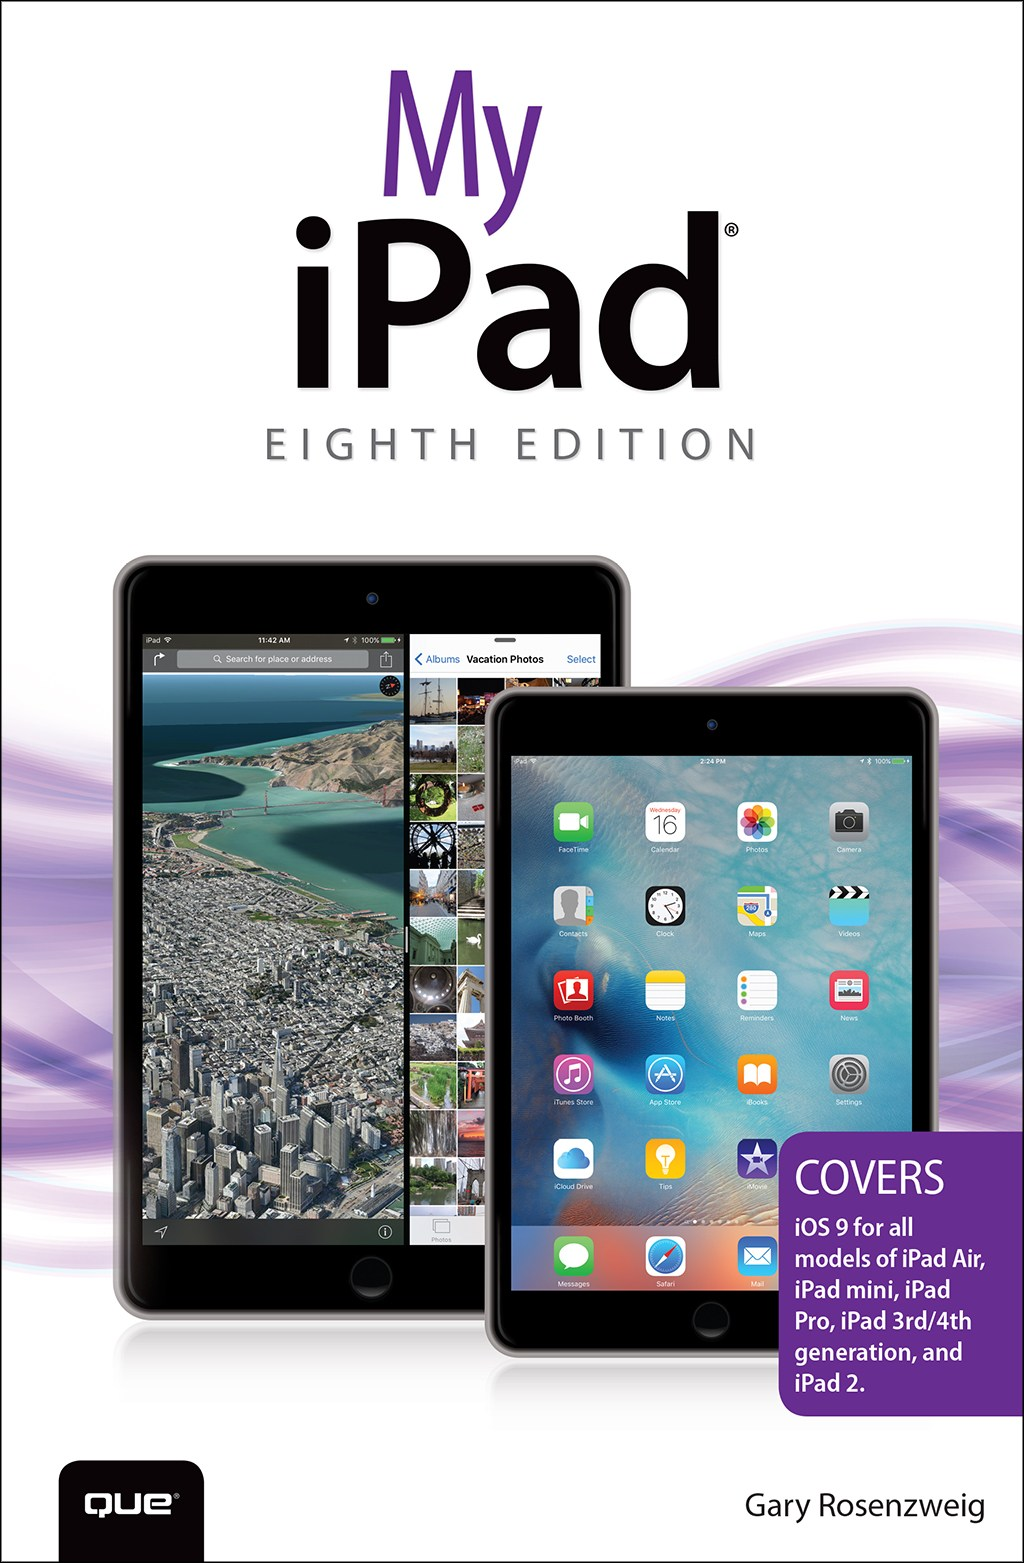 My iPad (Covers iOS 9 for iPad Pro, all models of iPad Air and iPad mini, iPad 3rd/4th generation, and iPad 2), 8th Edition